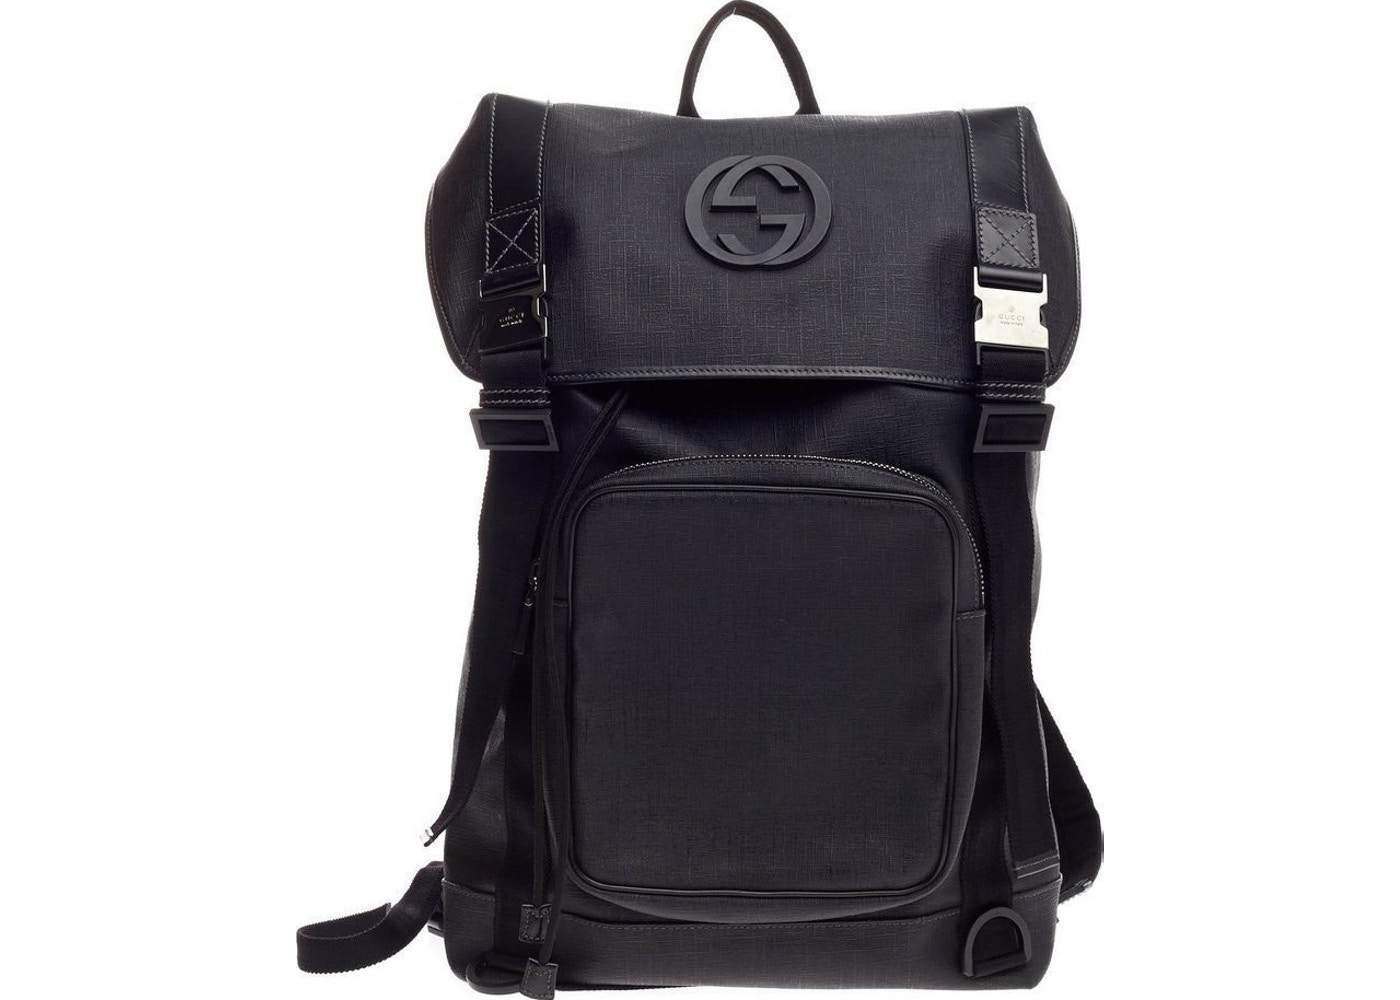 58635ccad5831c Gucci Interlocking G Backpack Large Black